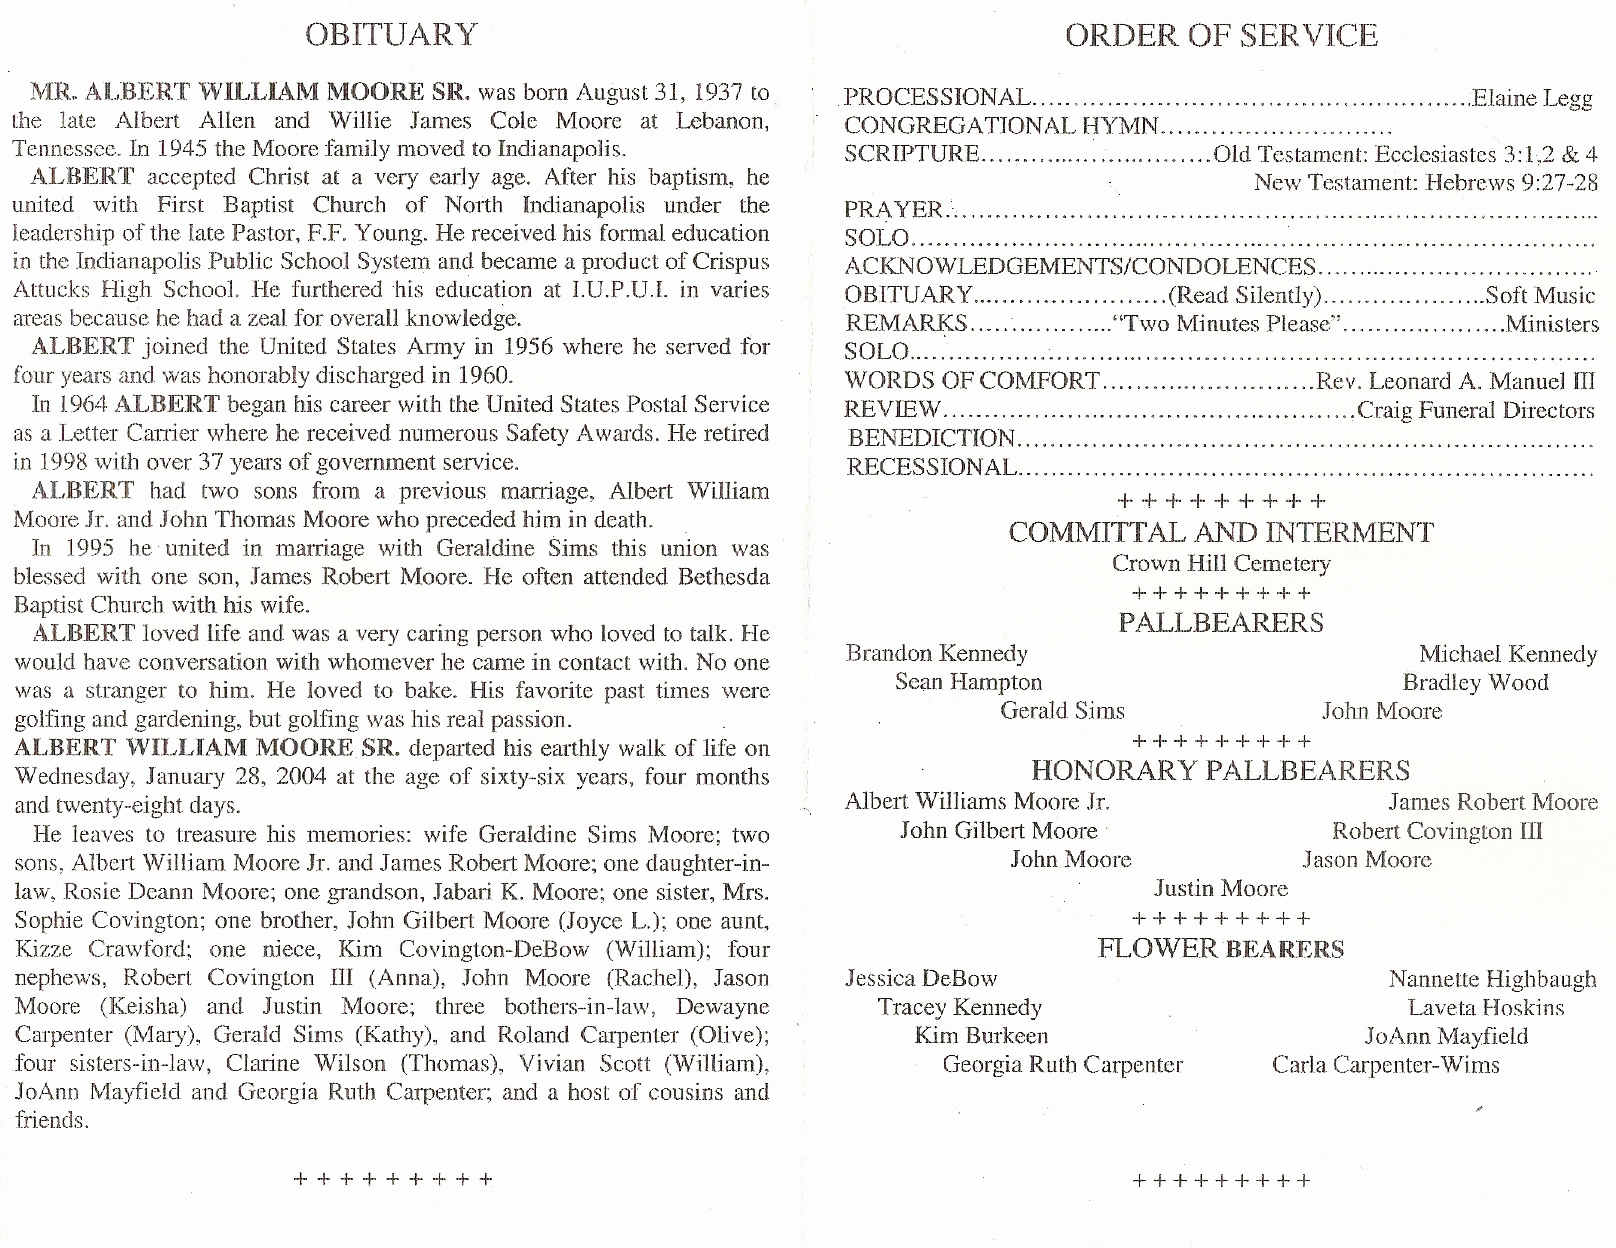 Funeral Service Outline Template Unique Funeral order Service Outline